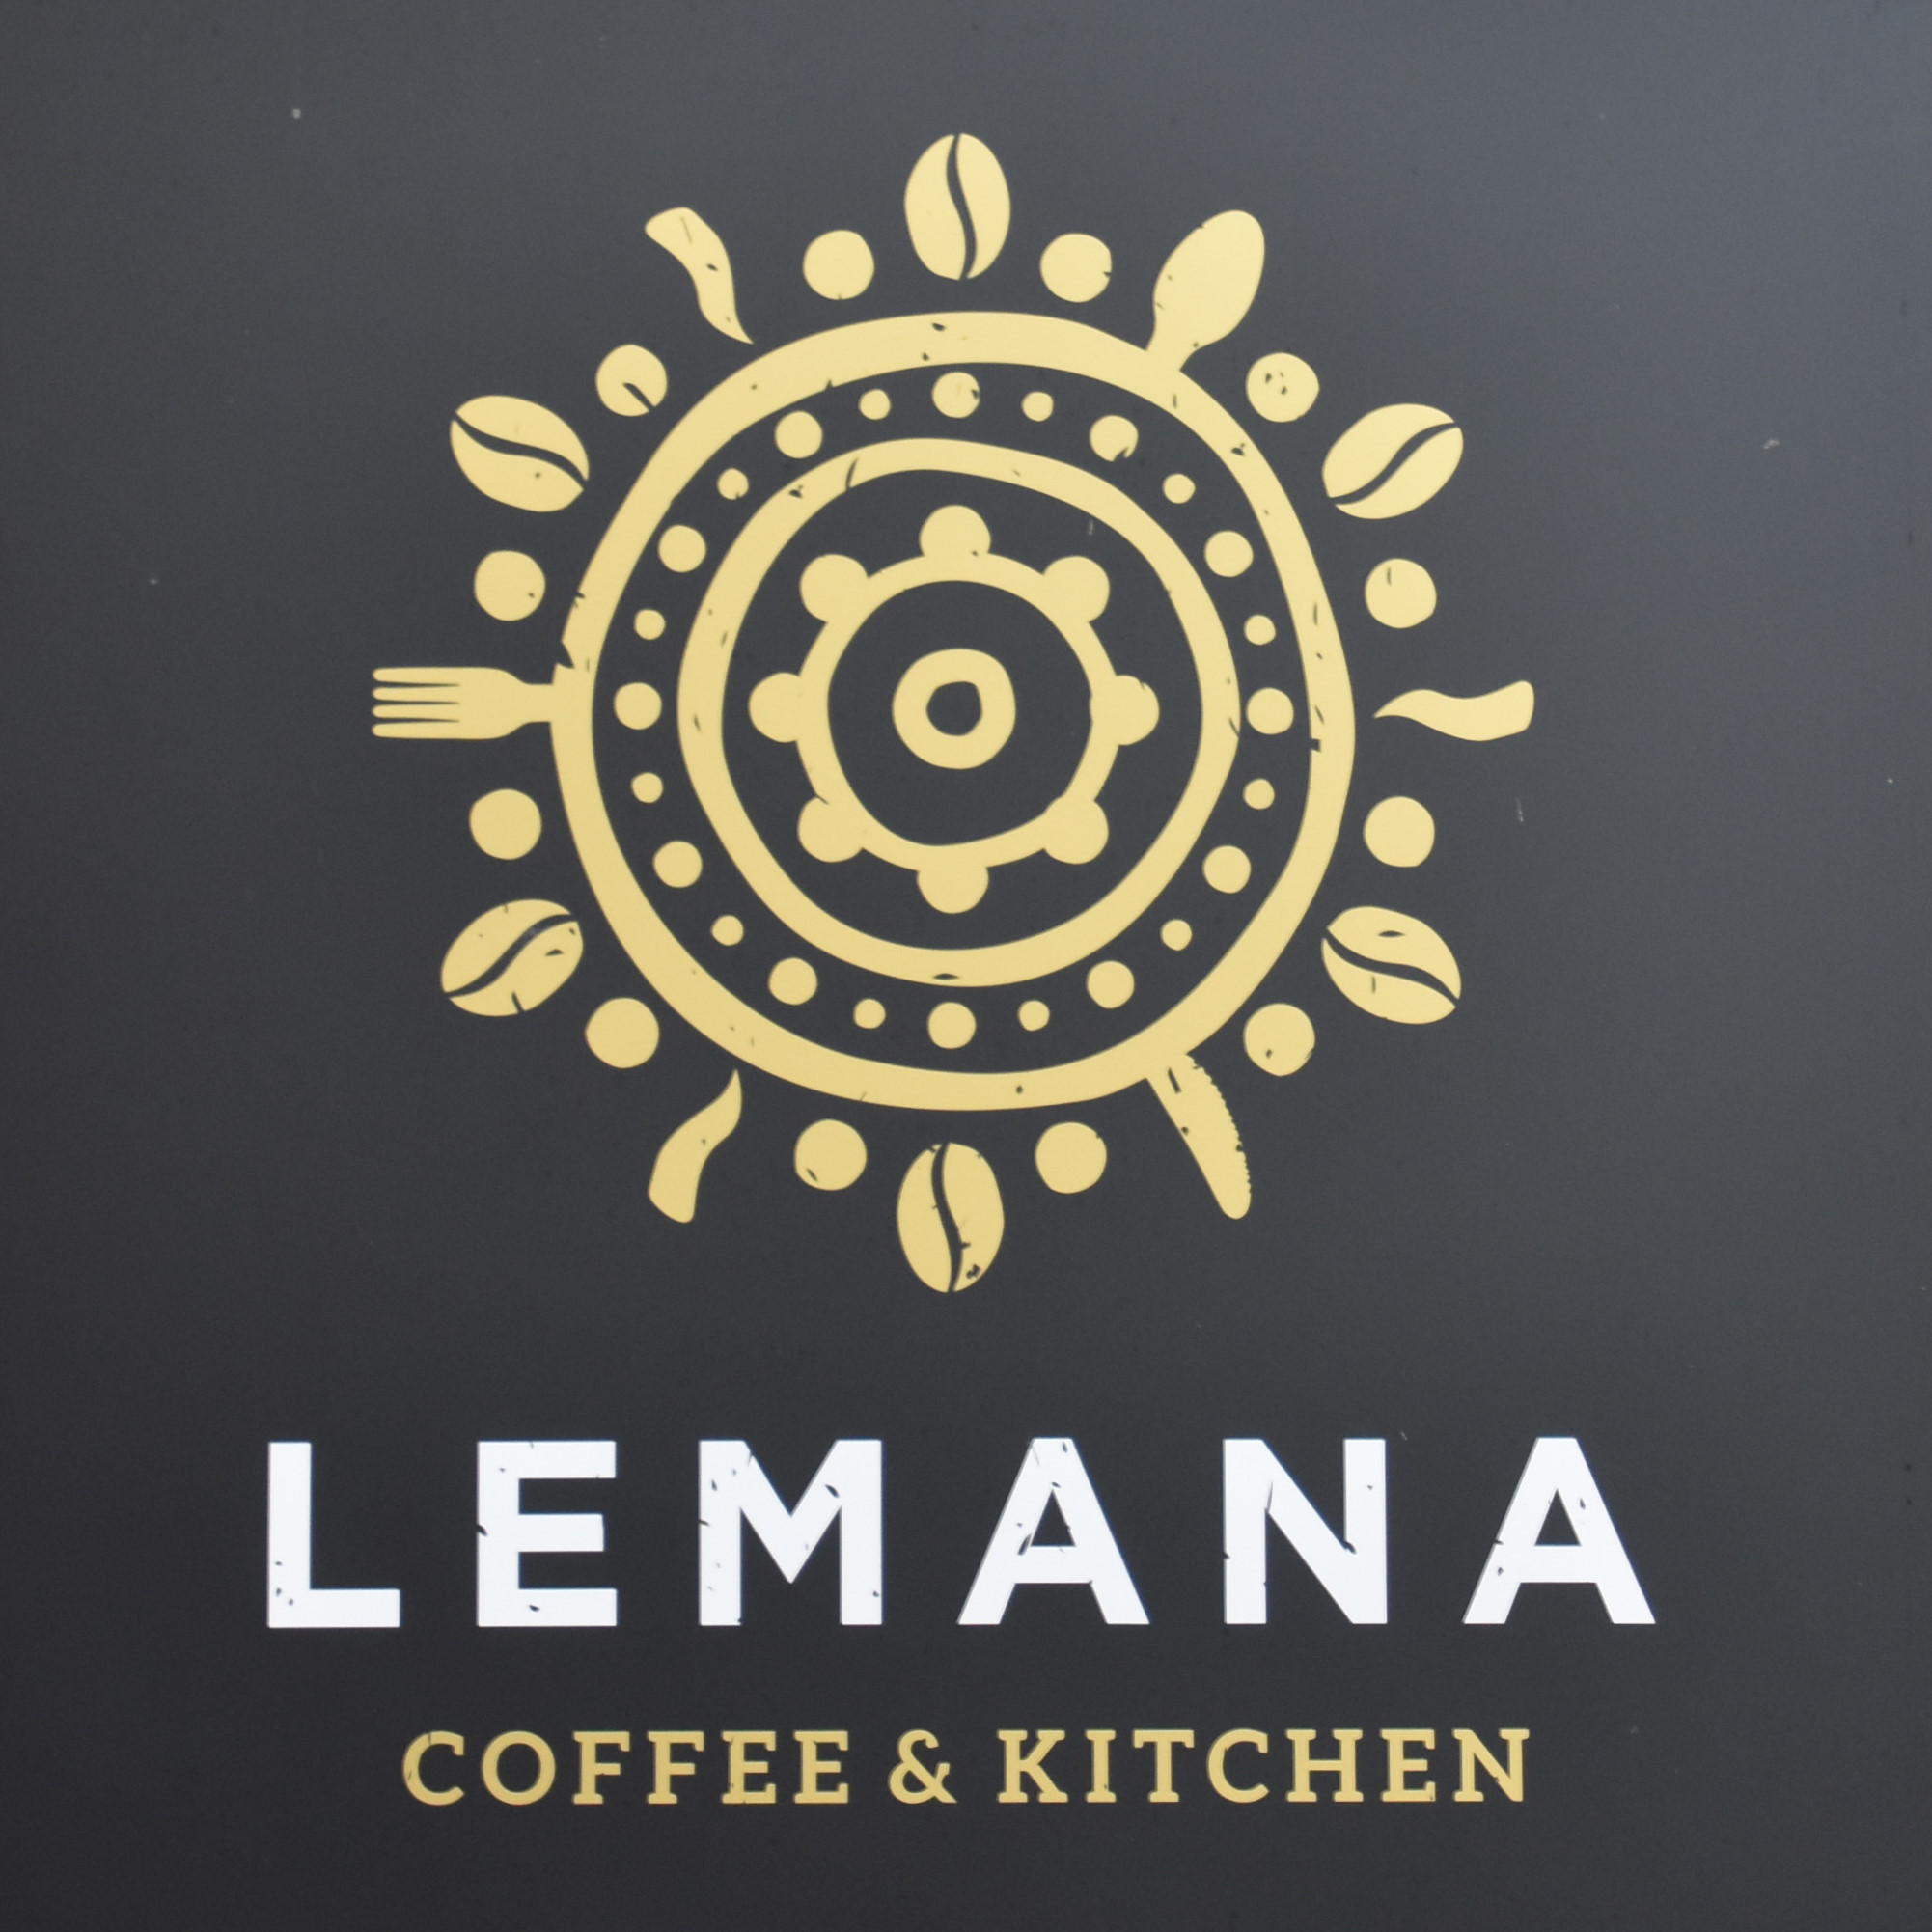 The Lemana Coffee & Kitchen logo from the sign on the wall at the end of Madeira Mews in Lymington.